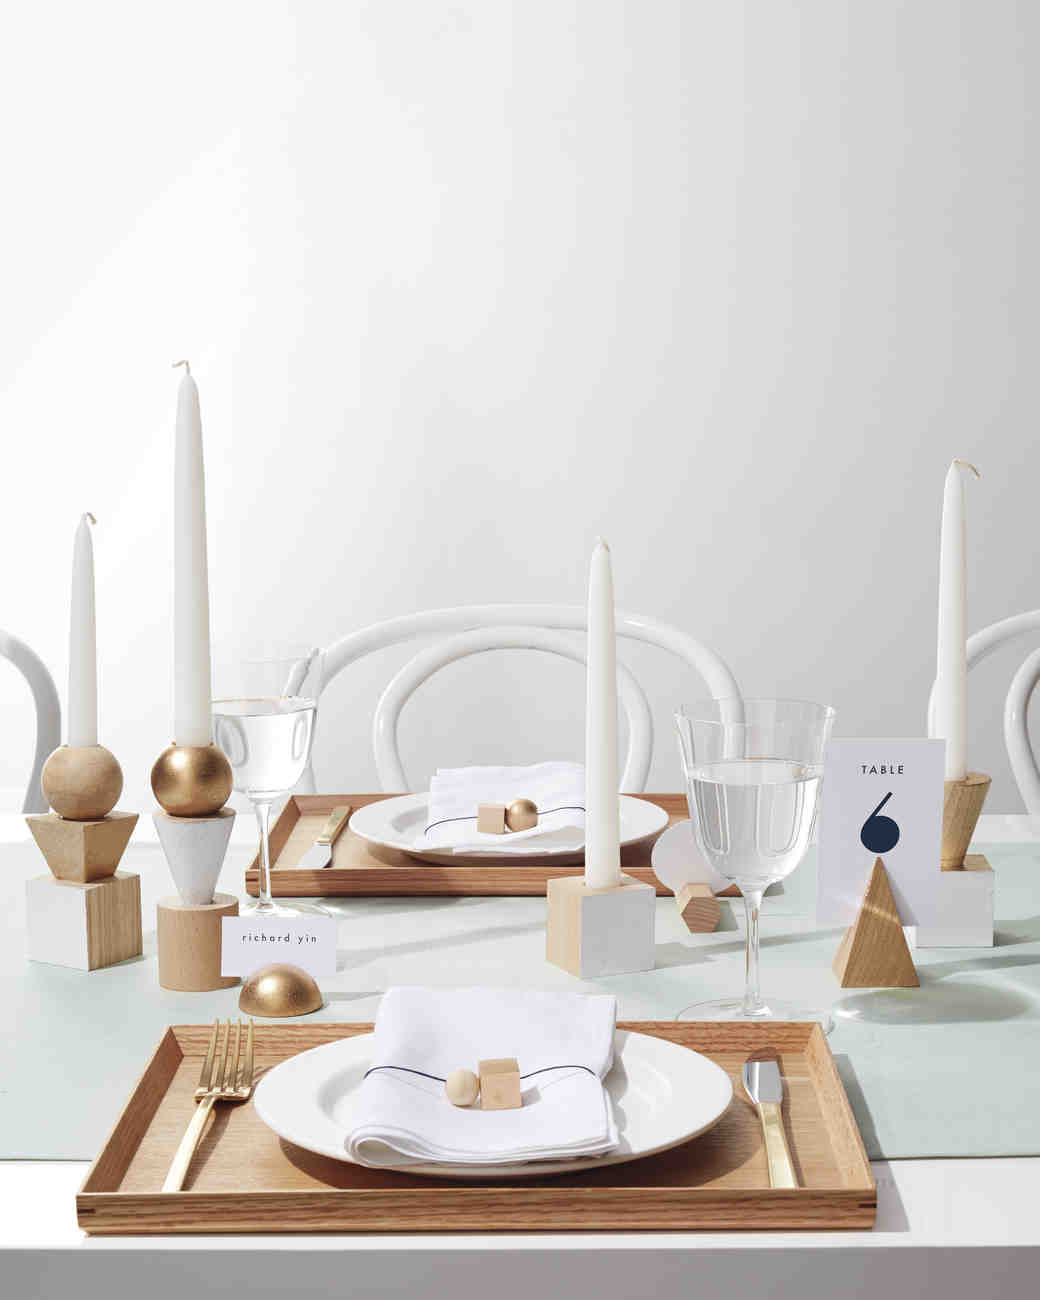 Wooden Block Candlestick Centerpiece